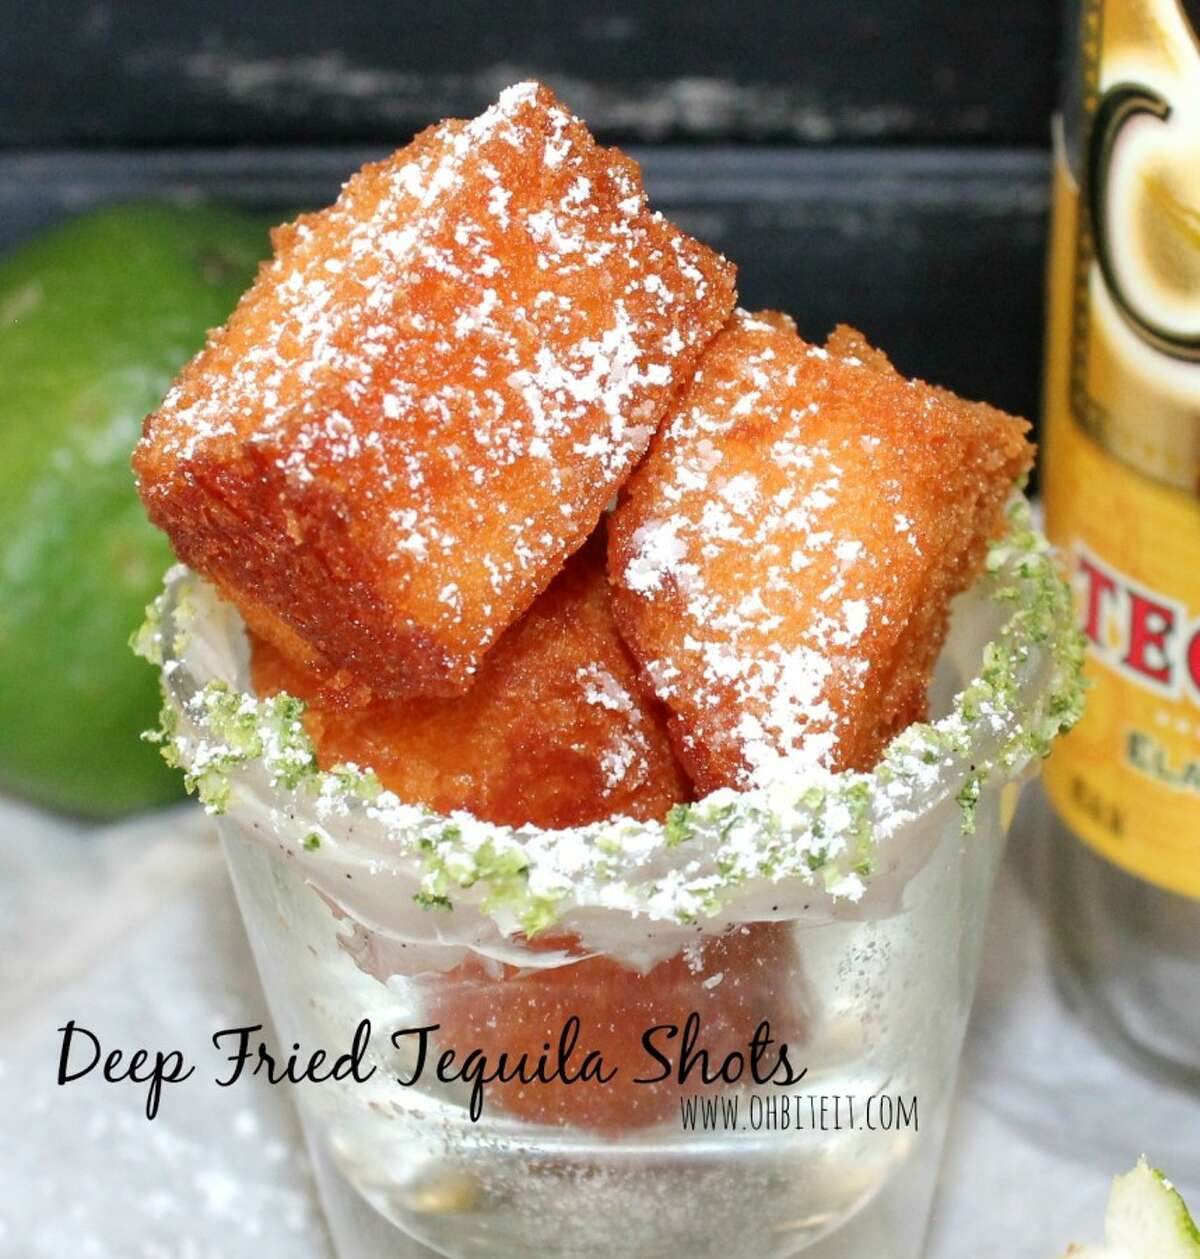 For the person that wants to get drunk without actually drinking, this may be the answer to all their wishes. Yes, deep-fried tequila shots are a thing.